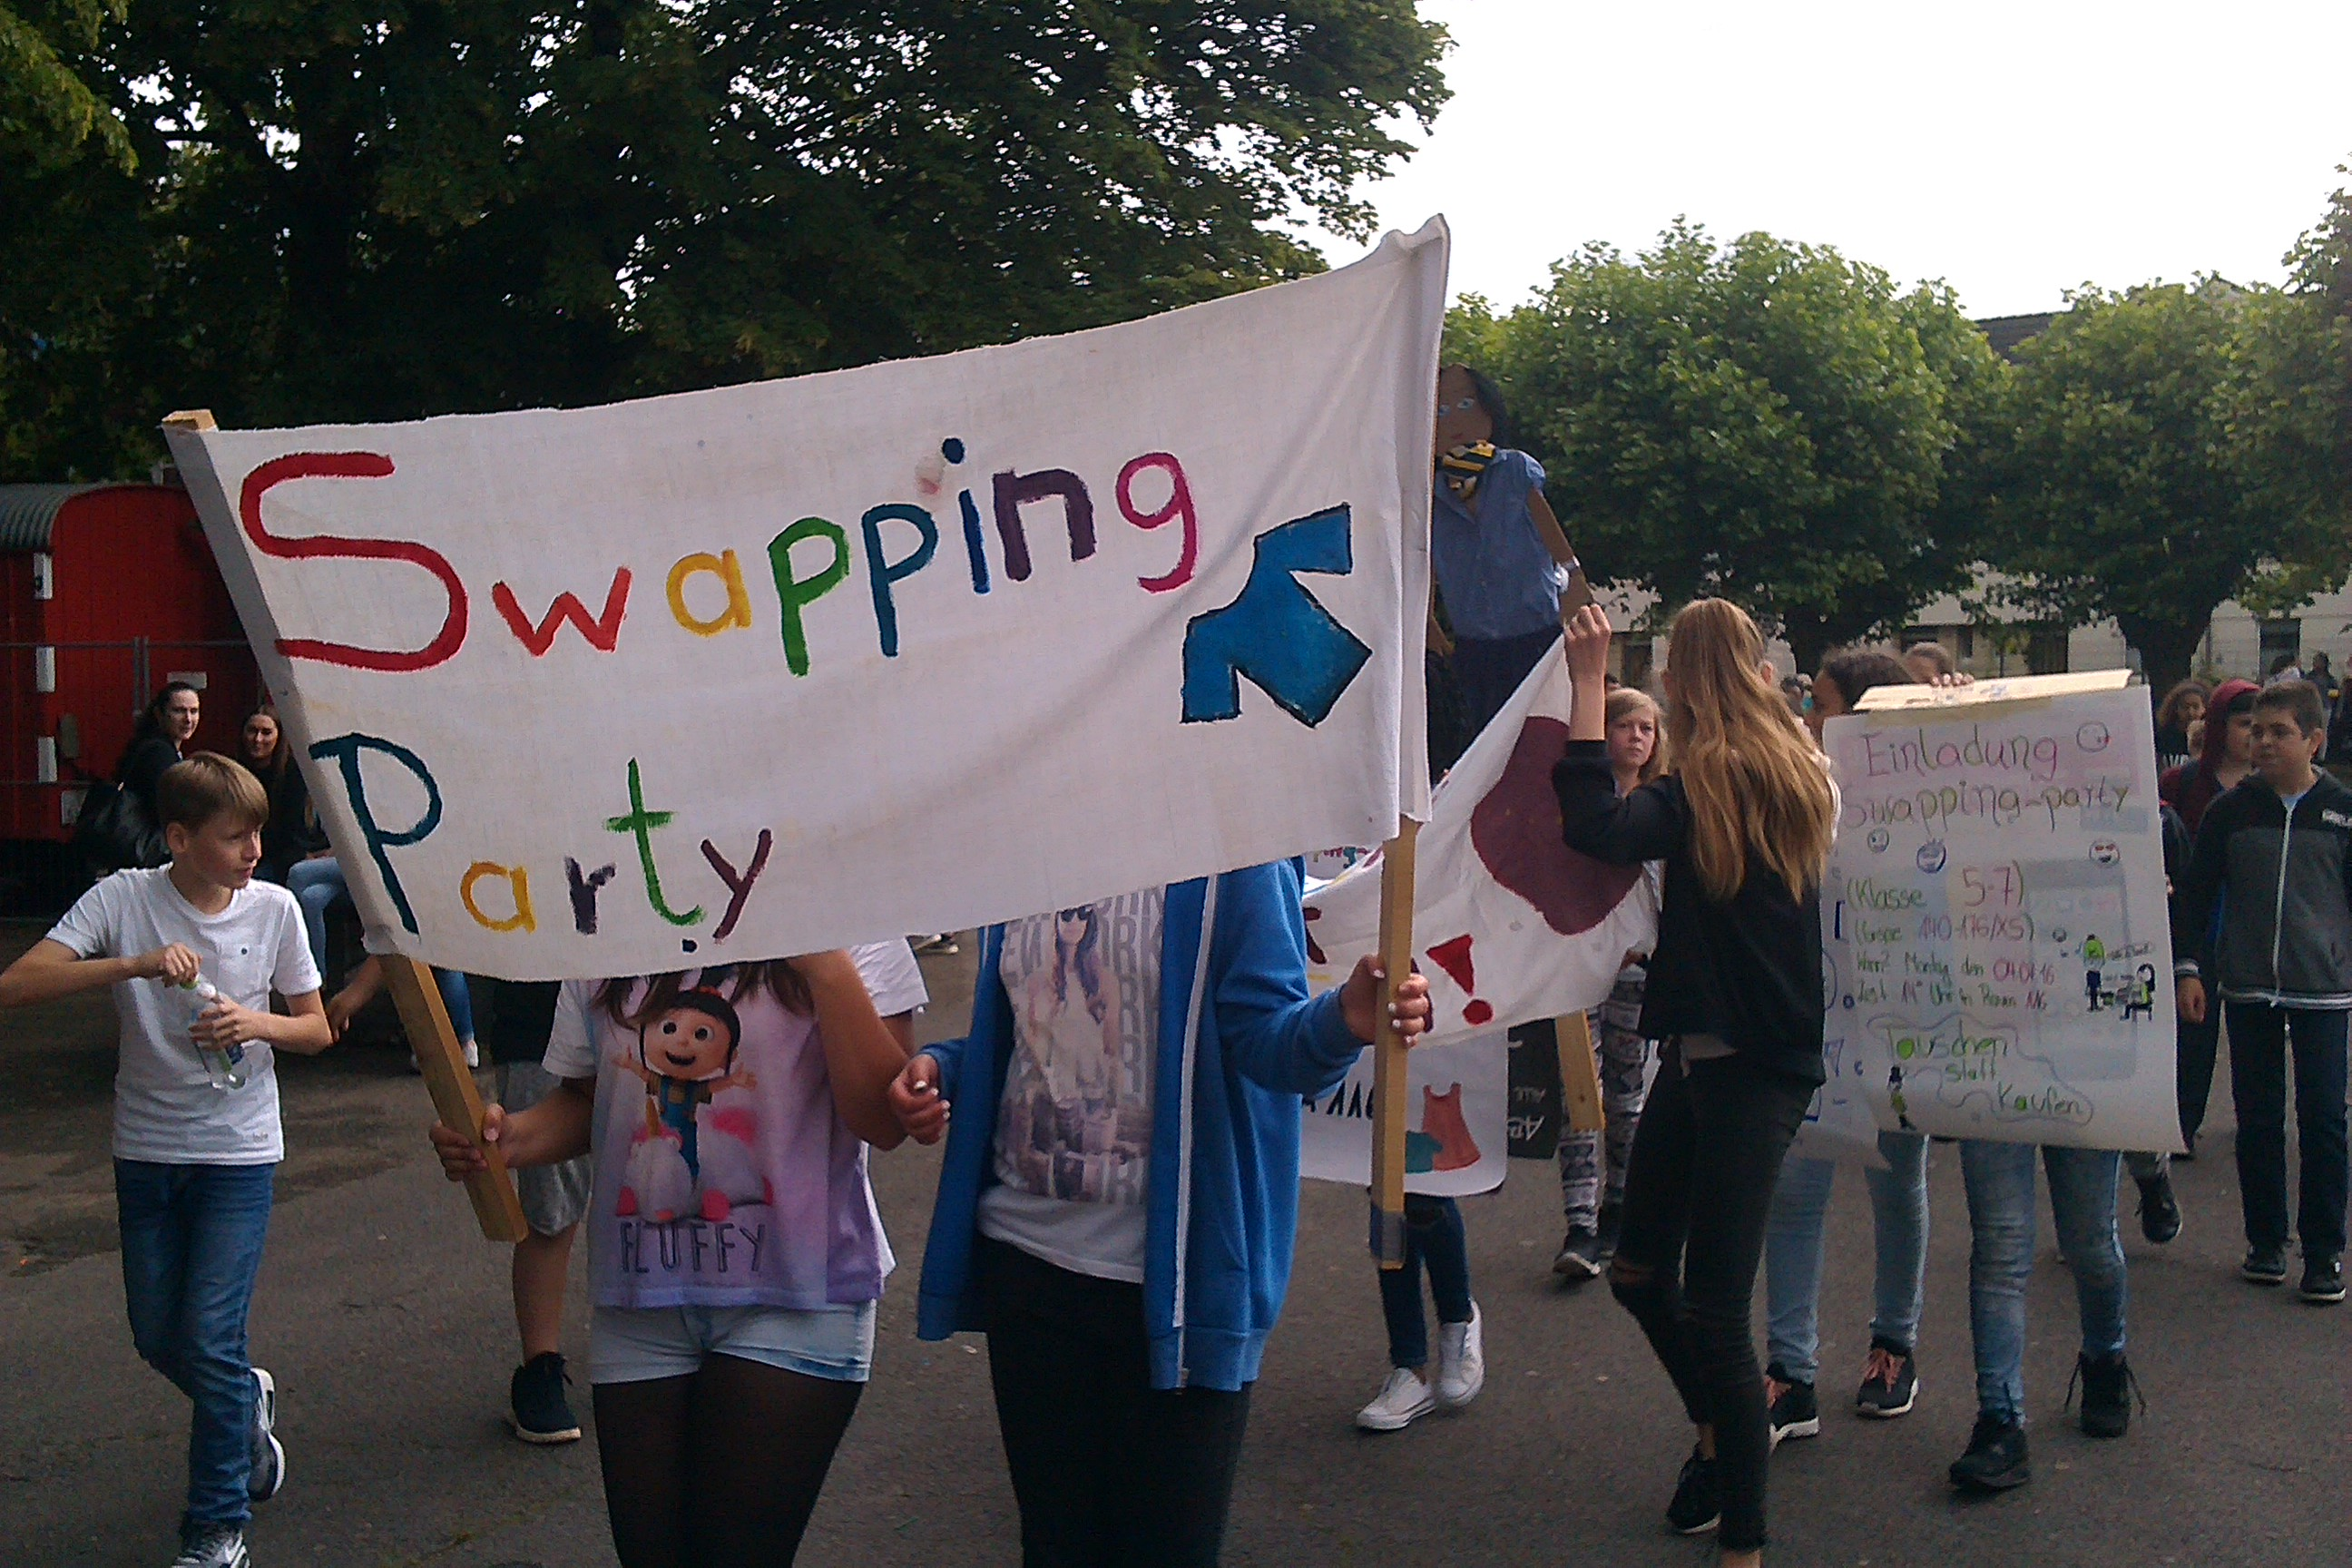 Demo Swapping Party 2